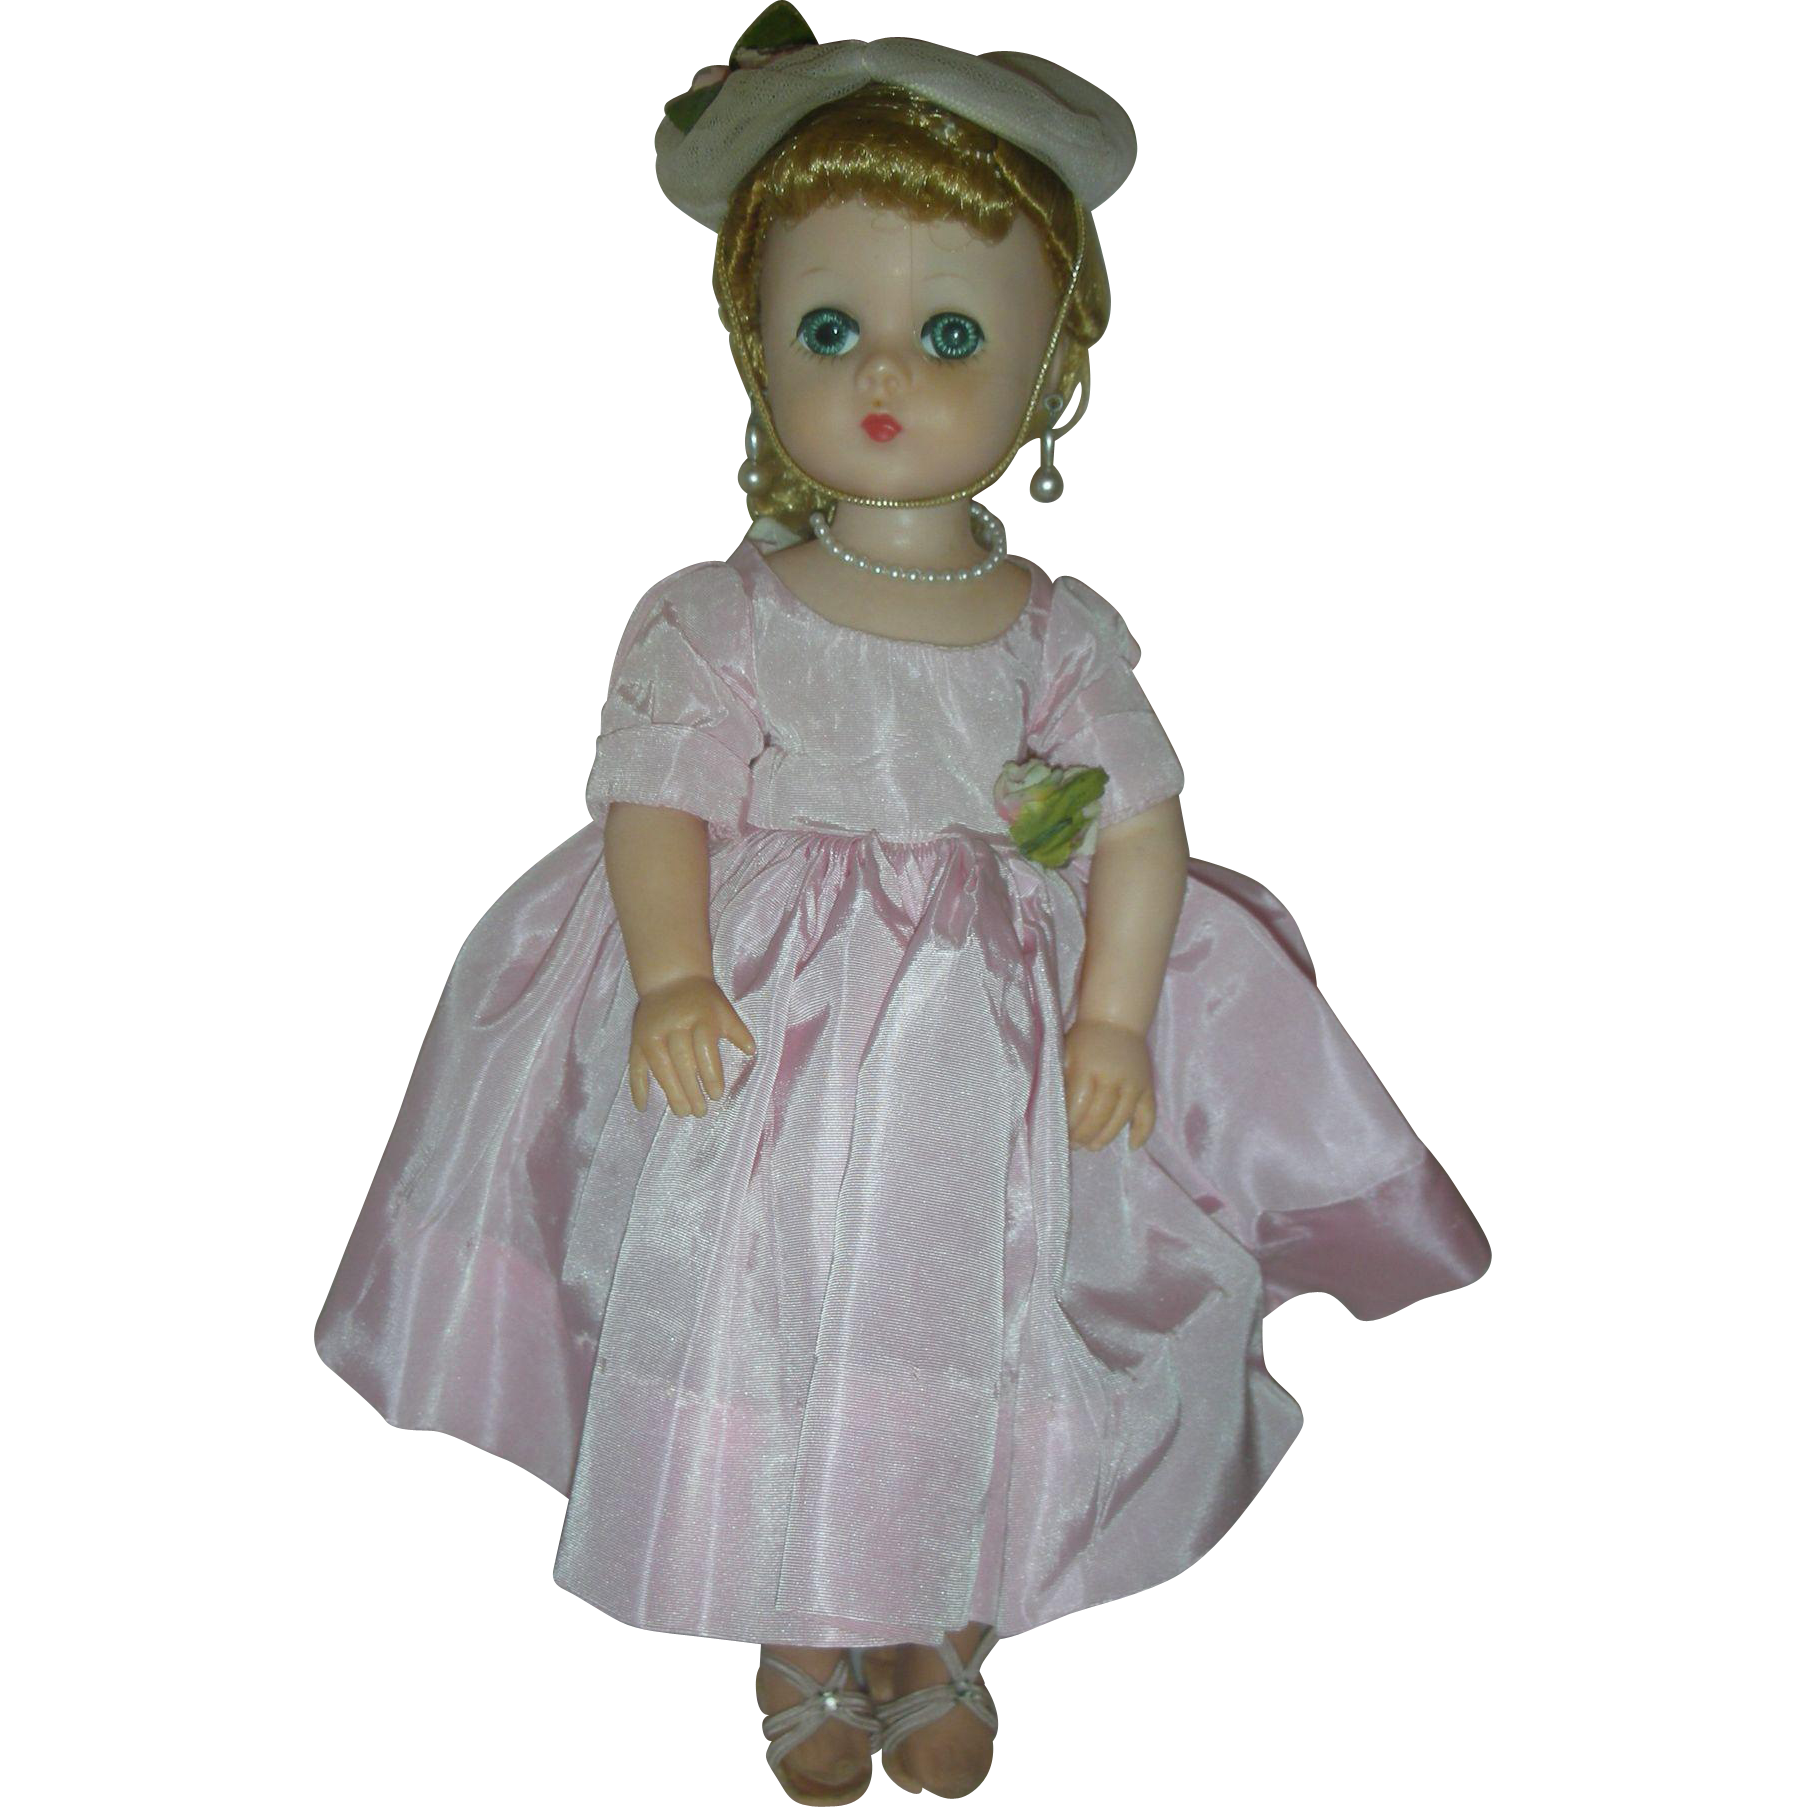 Vintage 1950s Madame Alexander Lissy Doll All Original #1250 An Afternoon Party